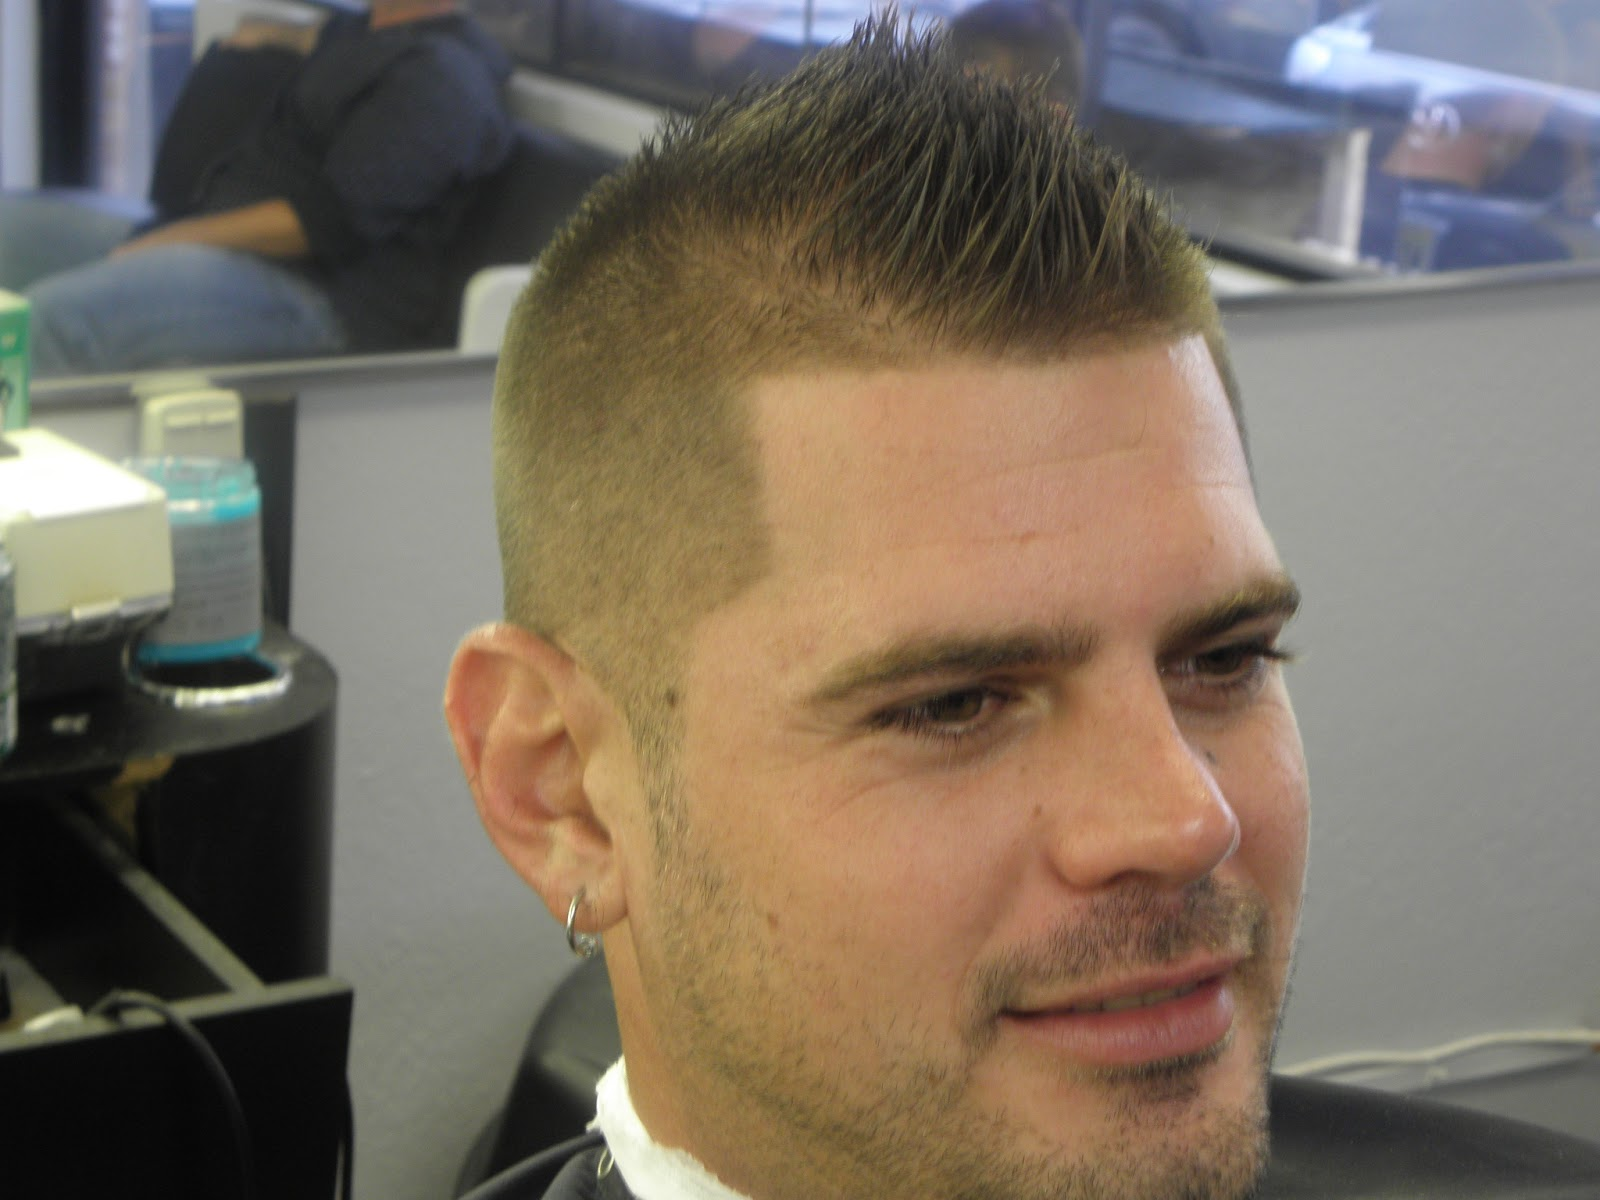 46 Fohawk Fade Haircuts For Men Hairstylo